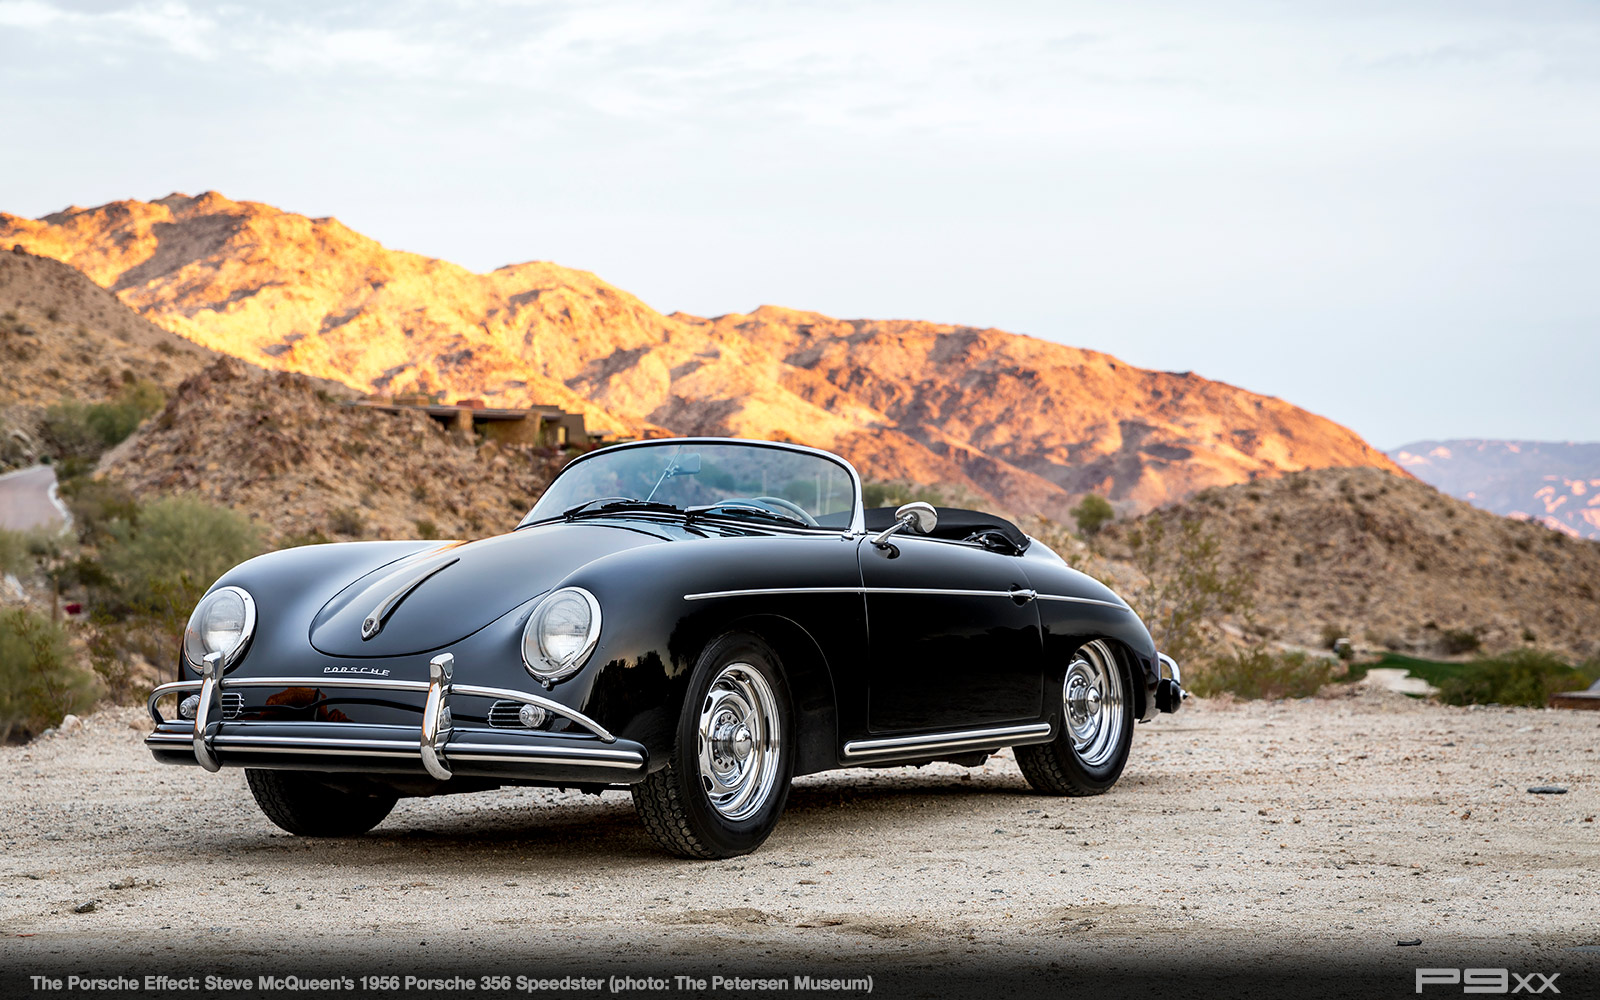 1956-Steve-McQueen-Chad-356-Speedster-Petersen-Automotive-Museum-The-Porsche-Effect-328